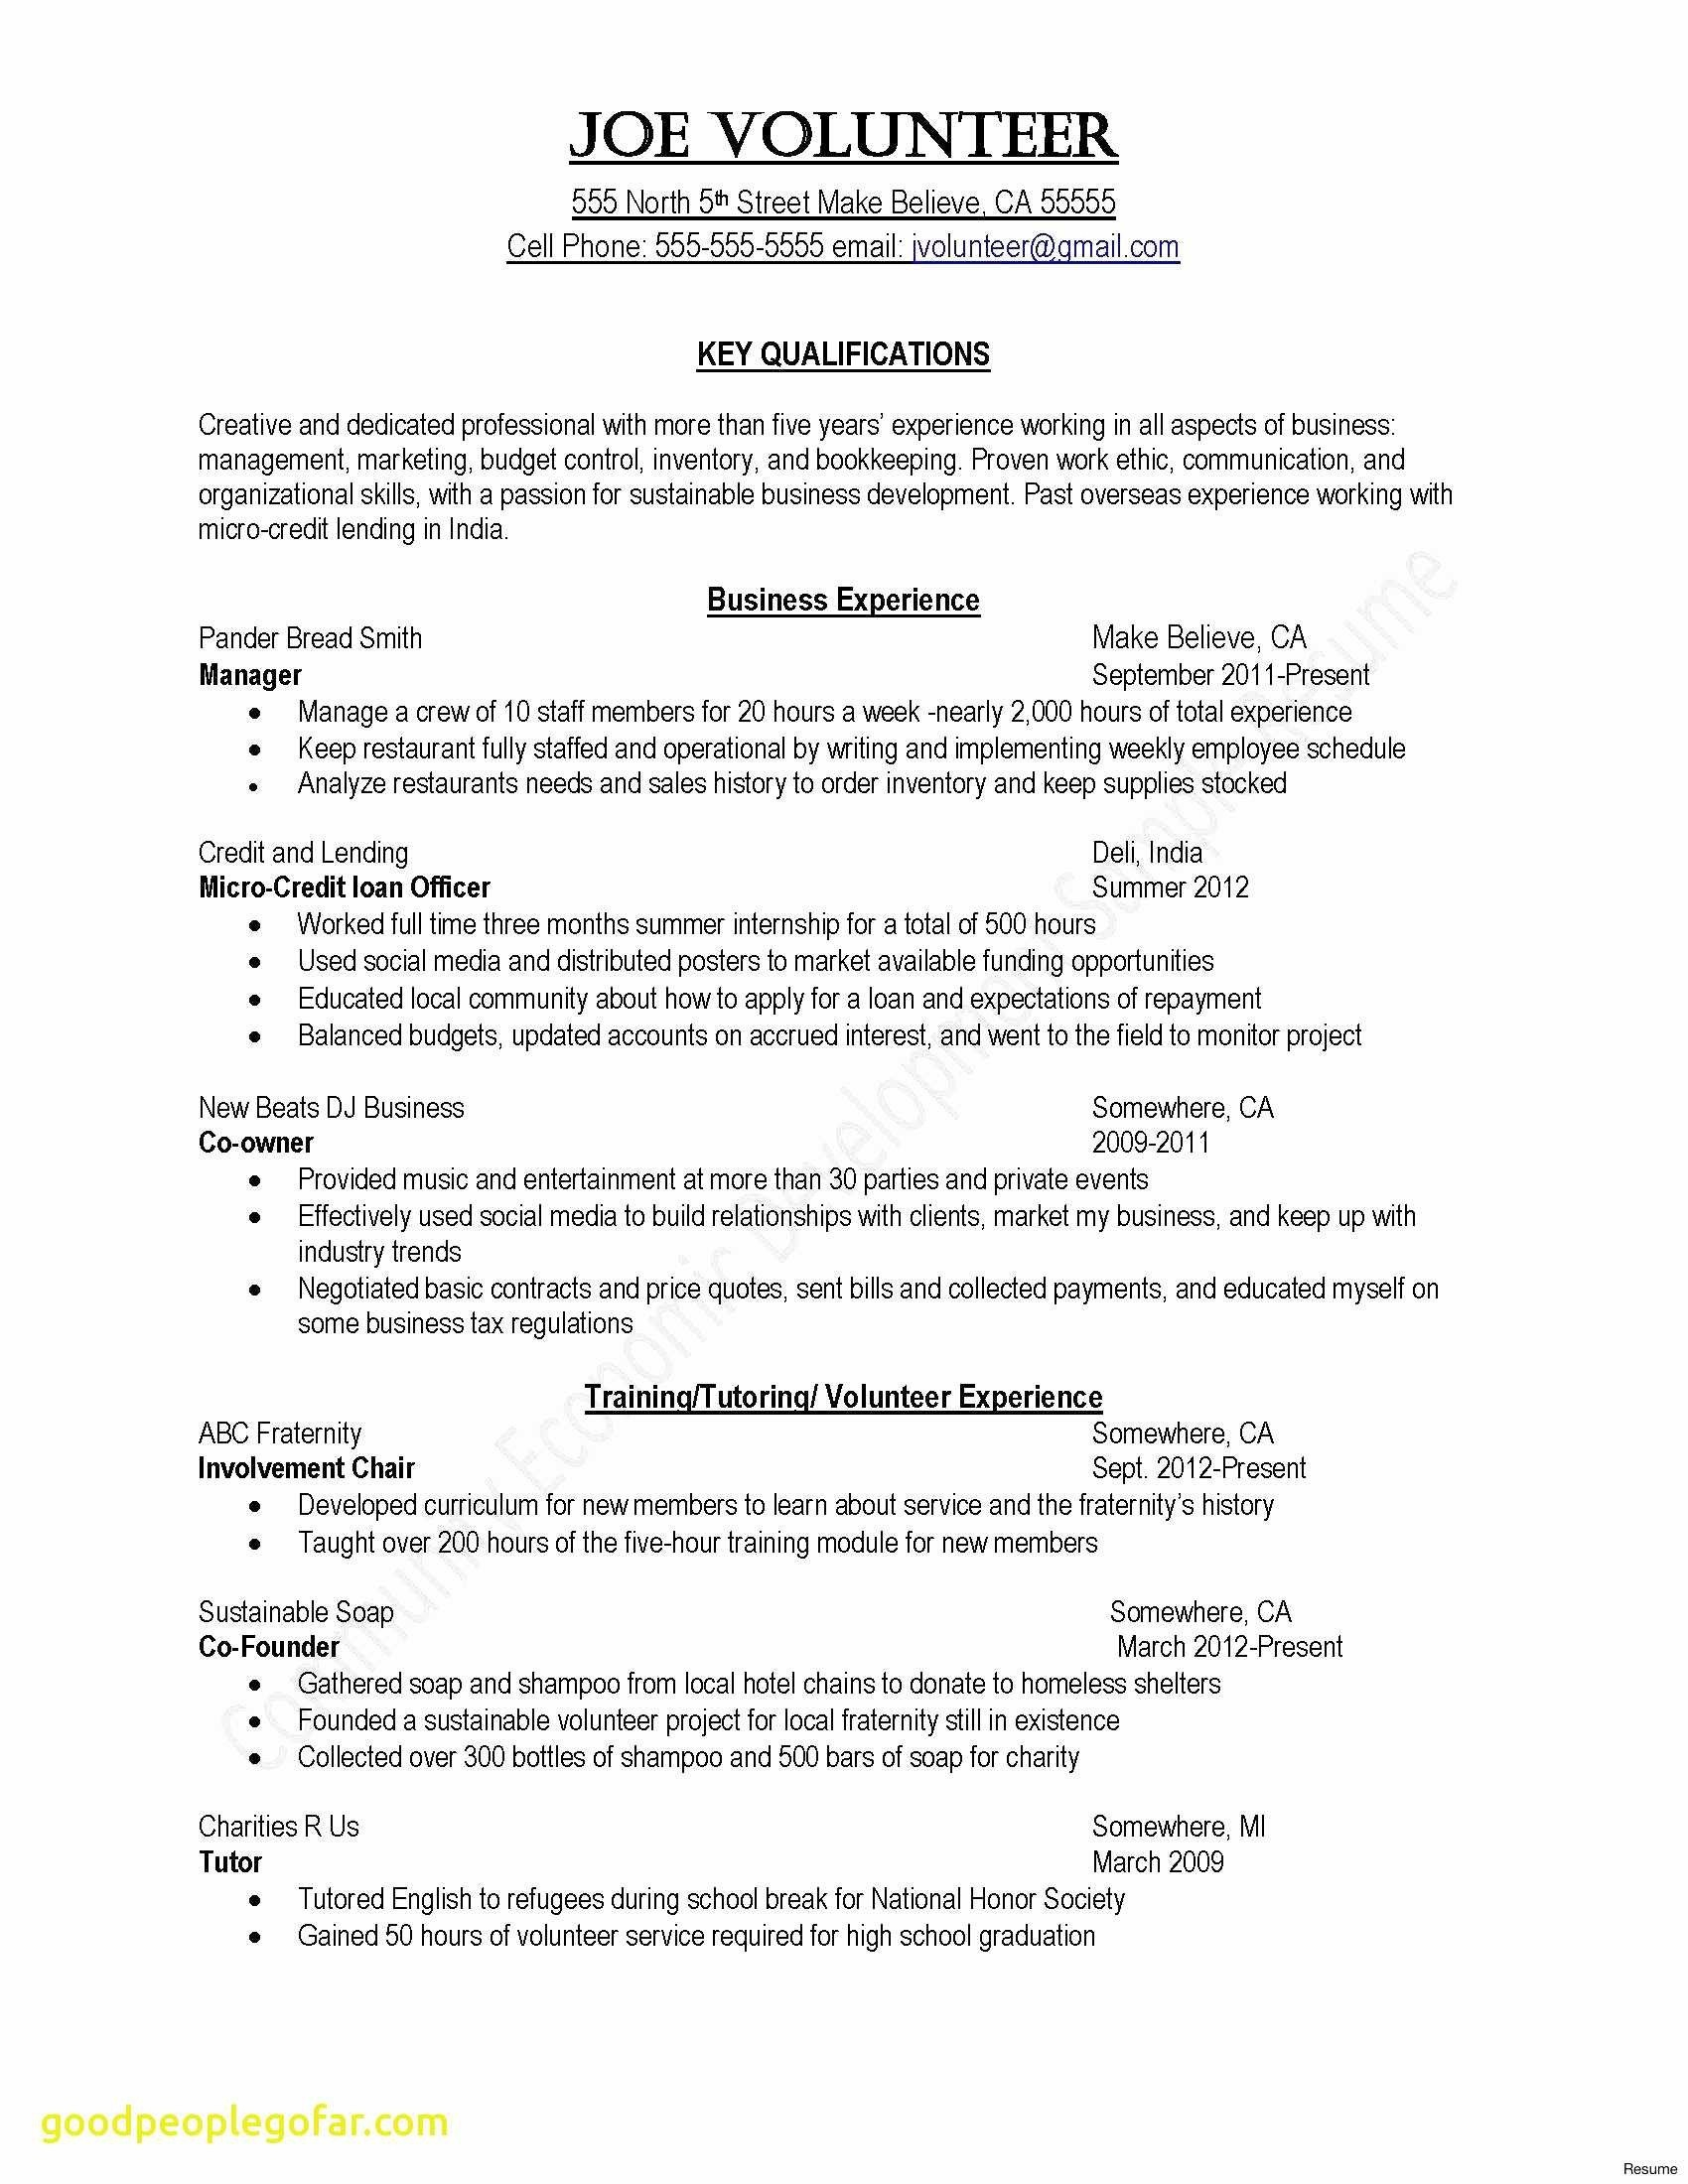 Employment Verification Letter Sample and Template - Best Employment Verification Letter Template Word